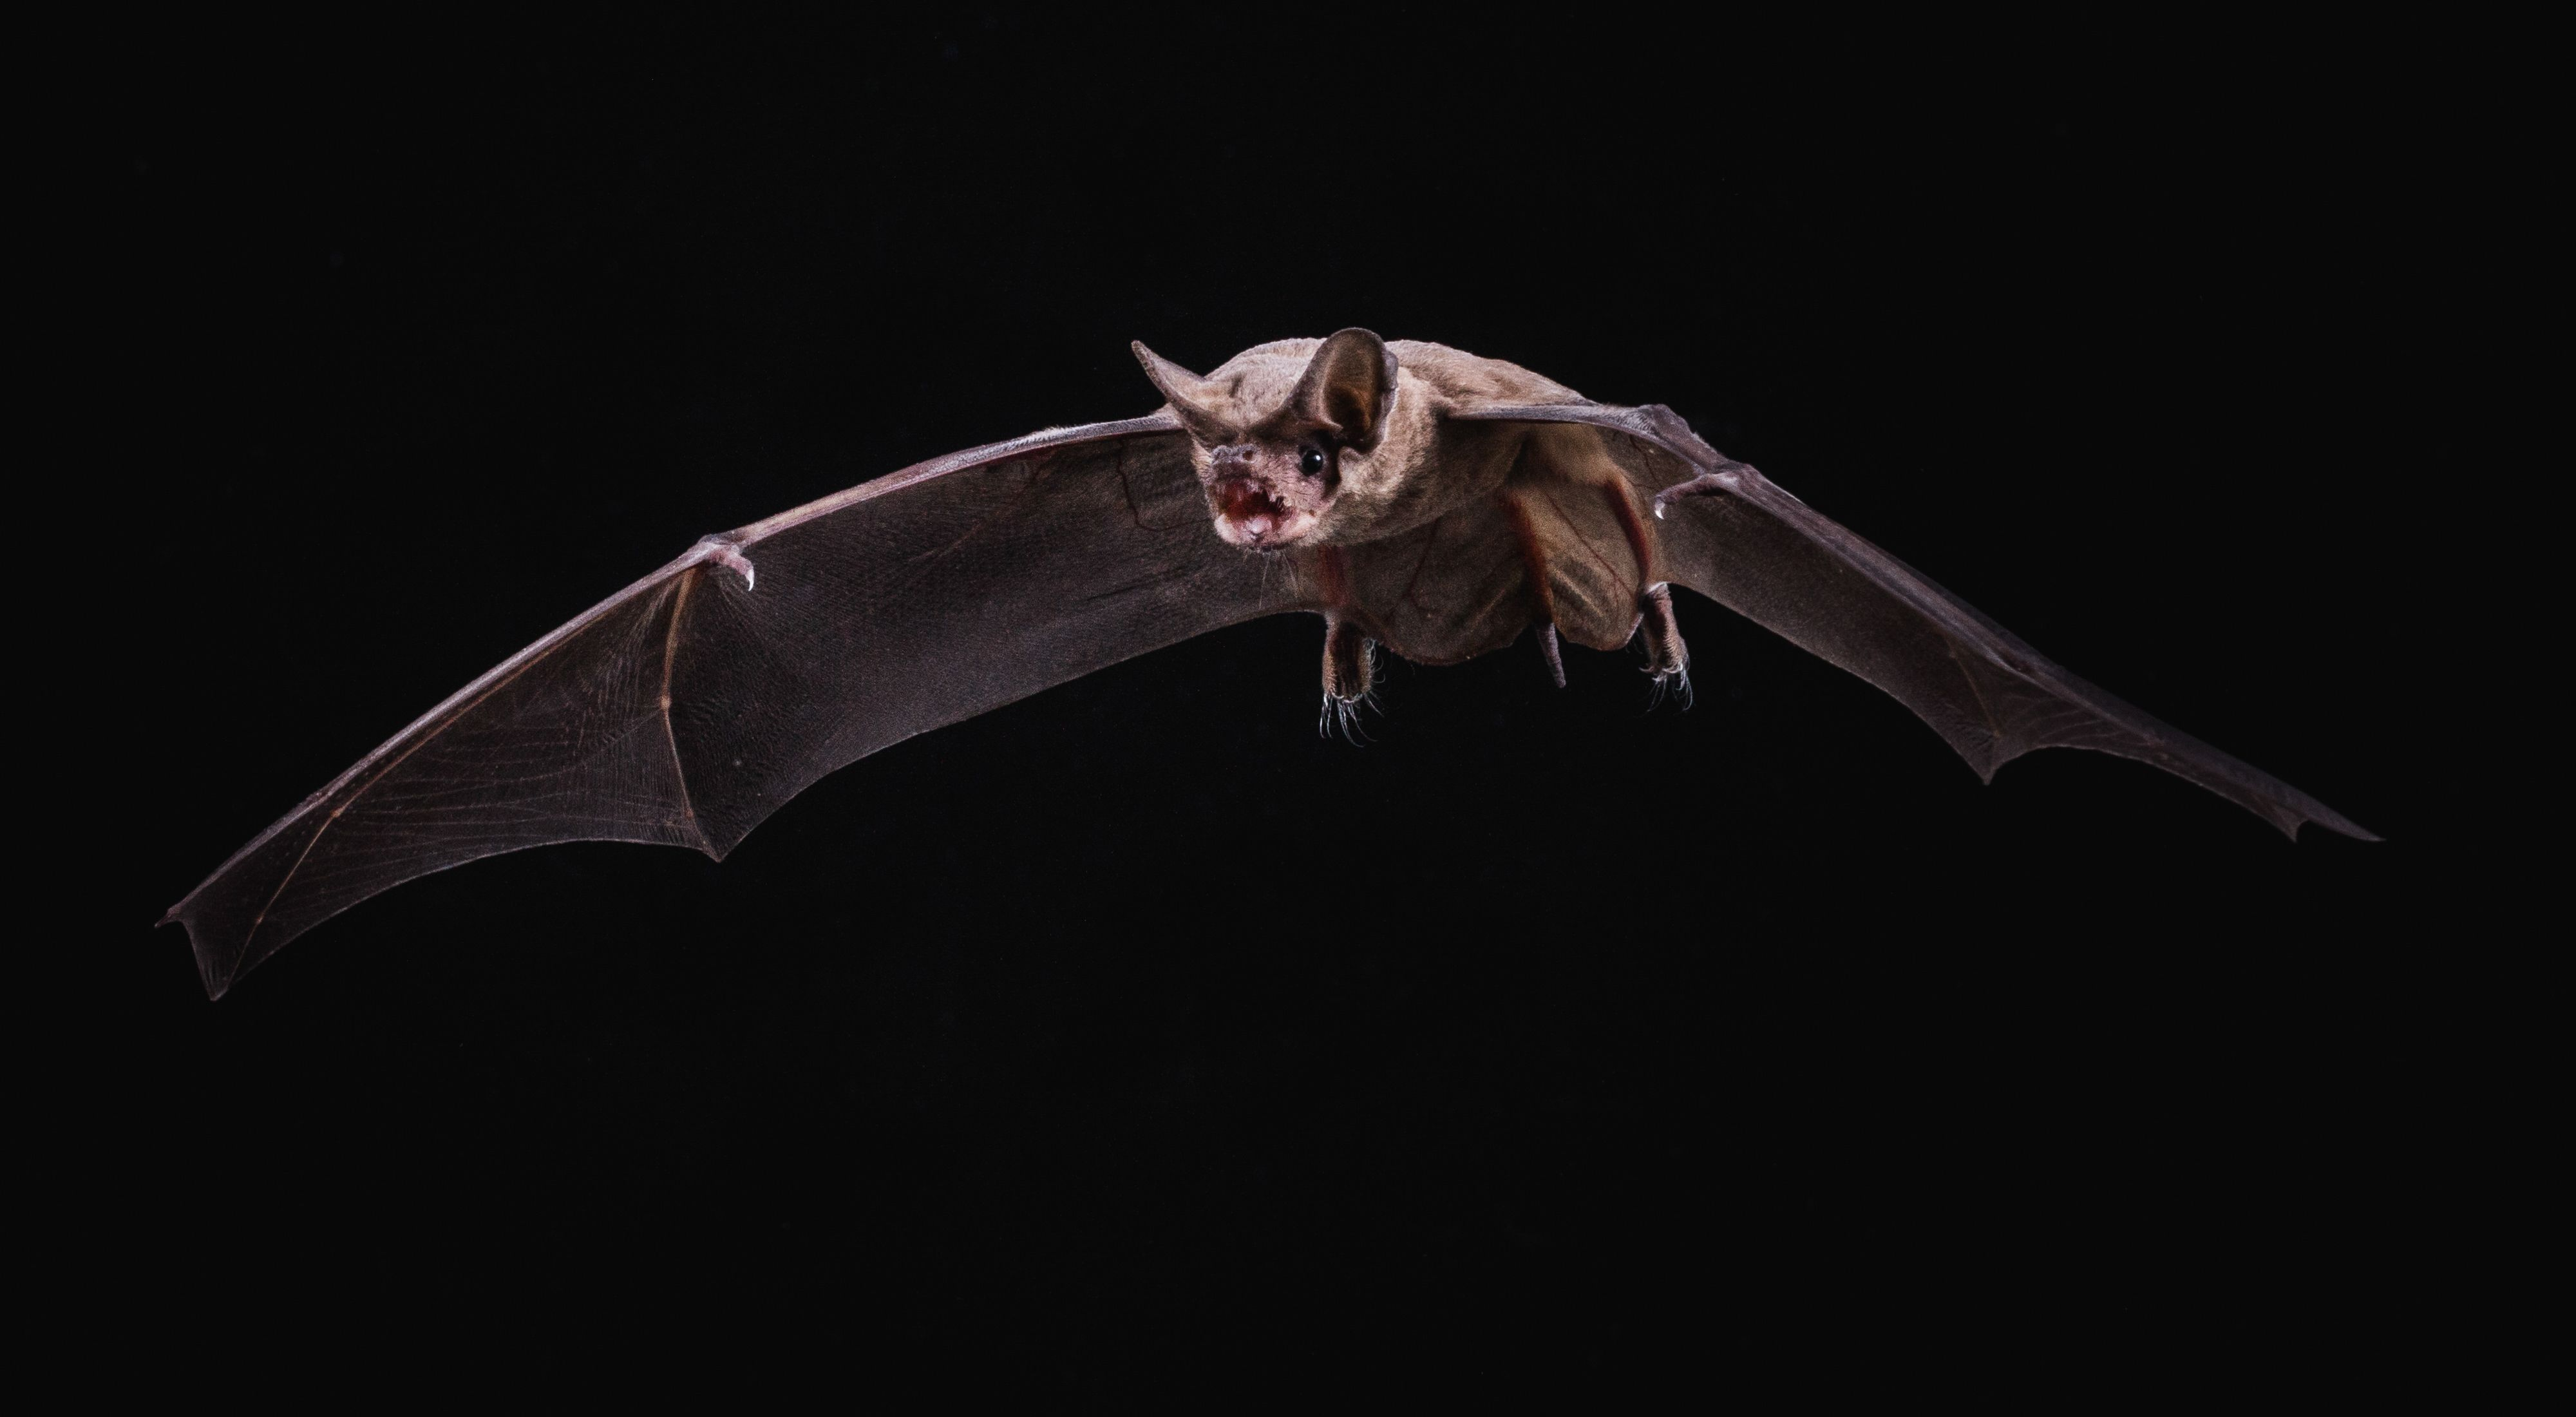 a Mexican free-tailed bat in Eckert James River Bat Cave Preserve in Mason, Texas.